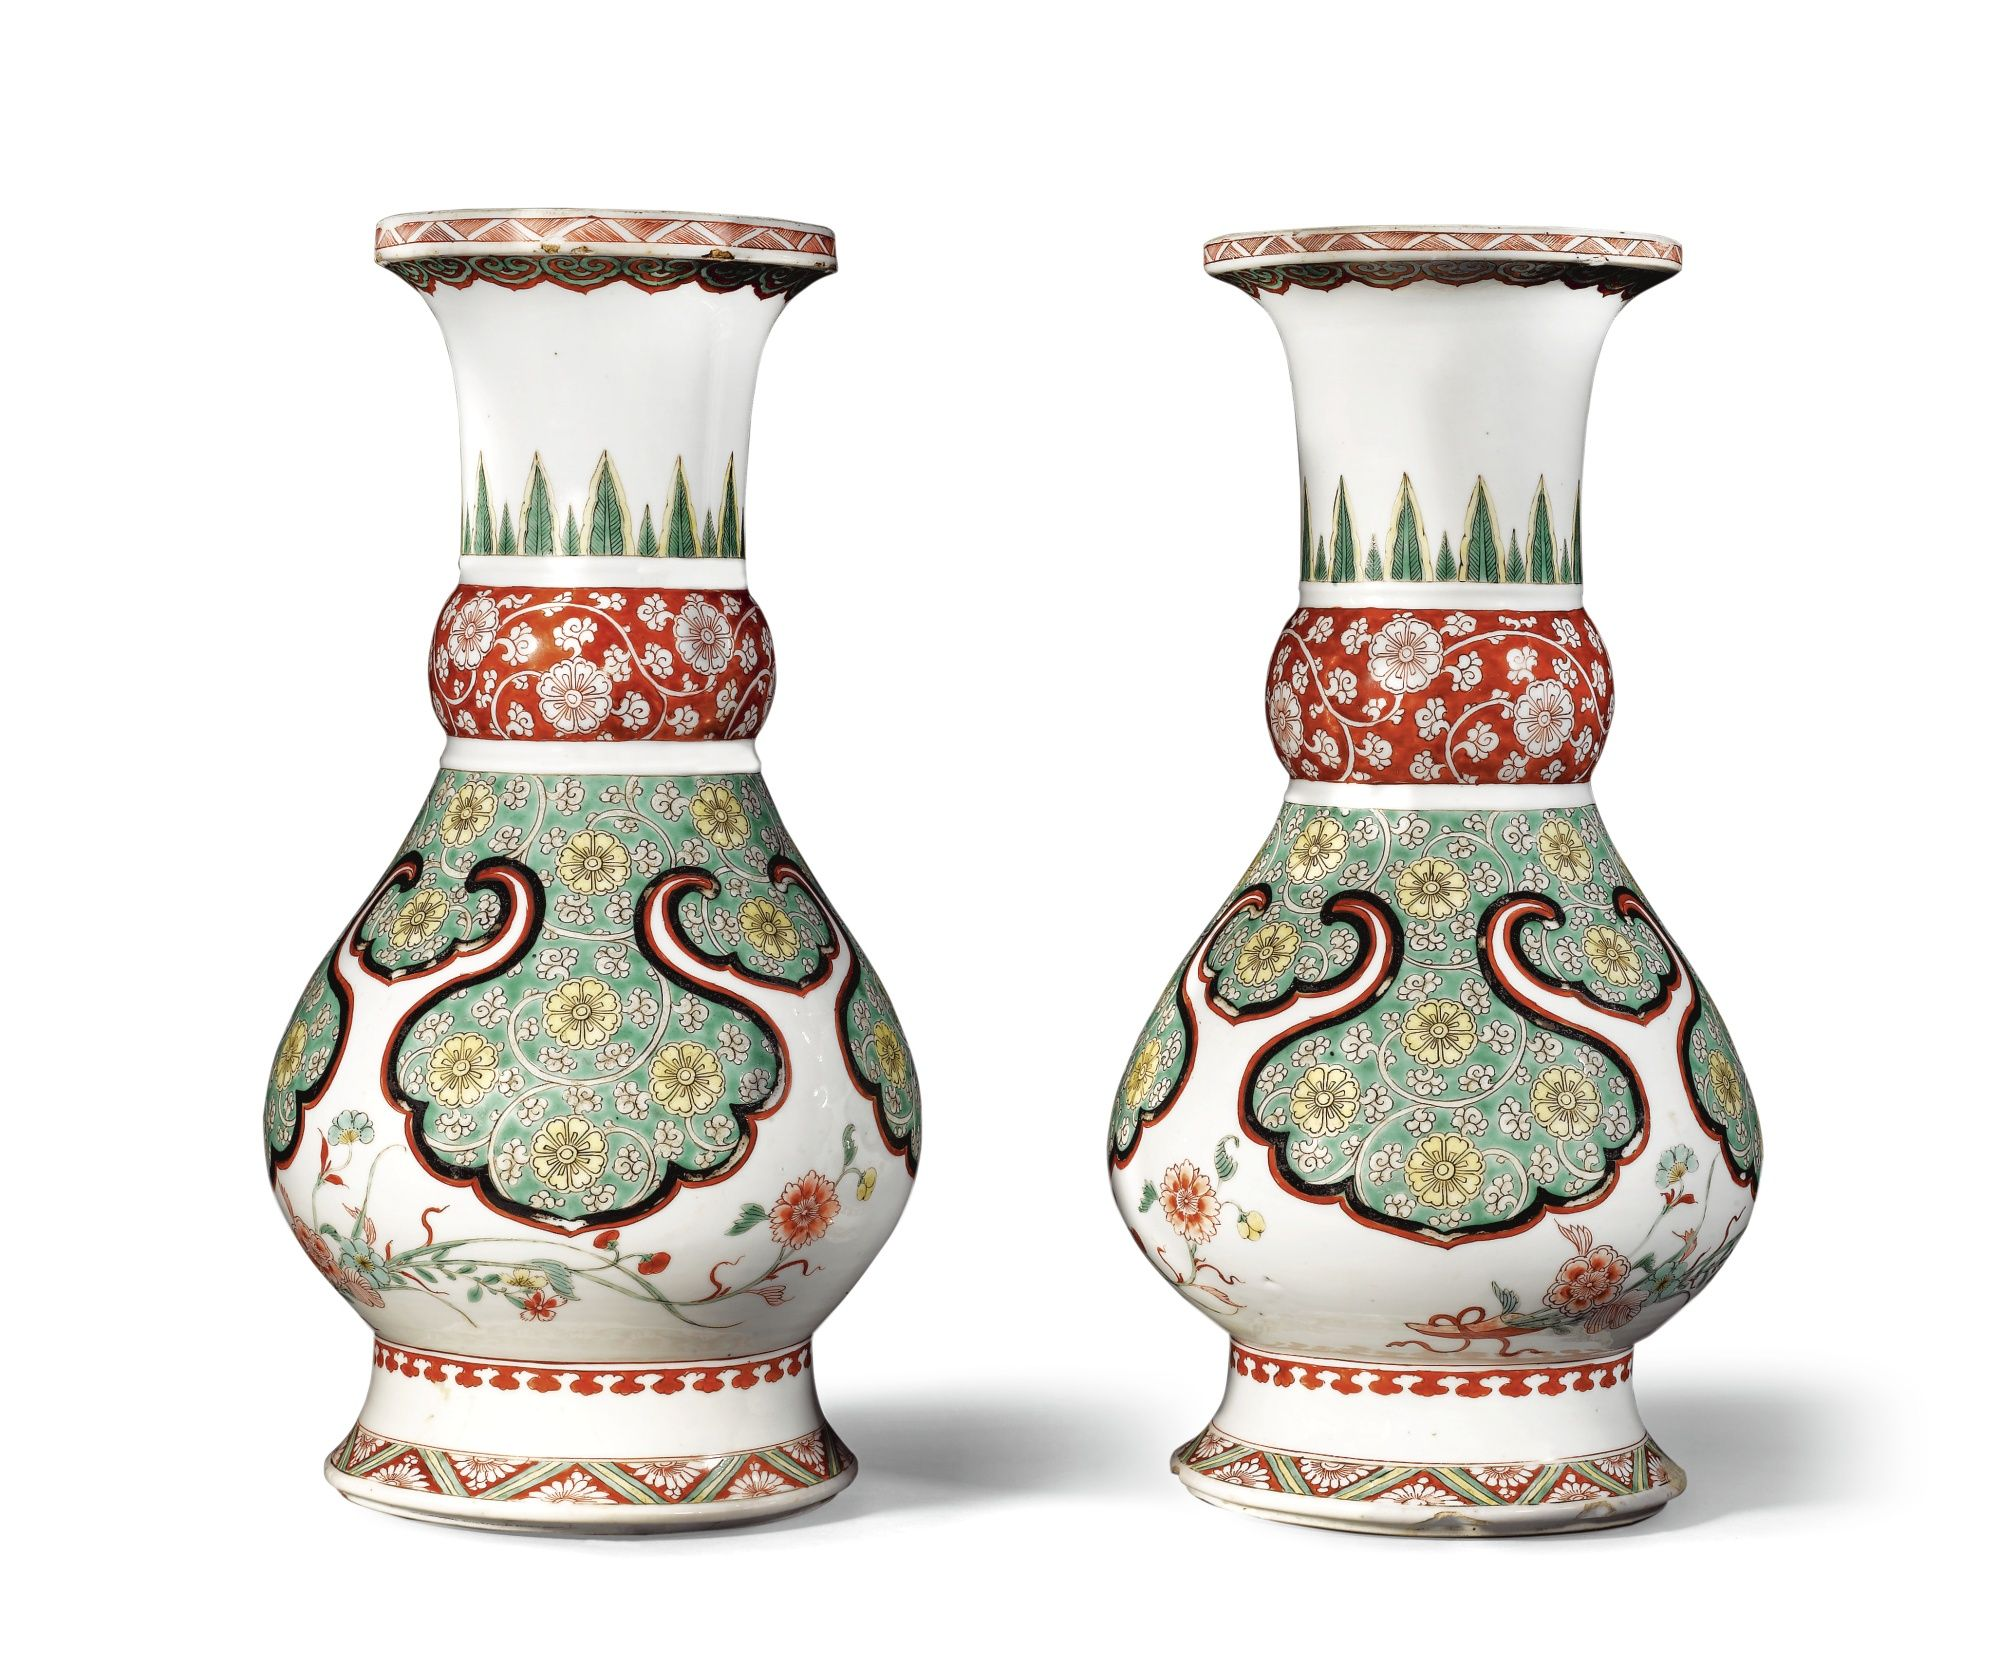 A pair of famille-verte vases, Qing dynasty, Kangxi period